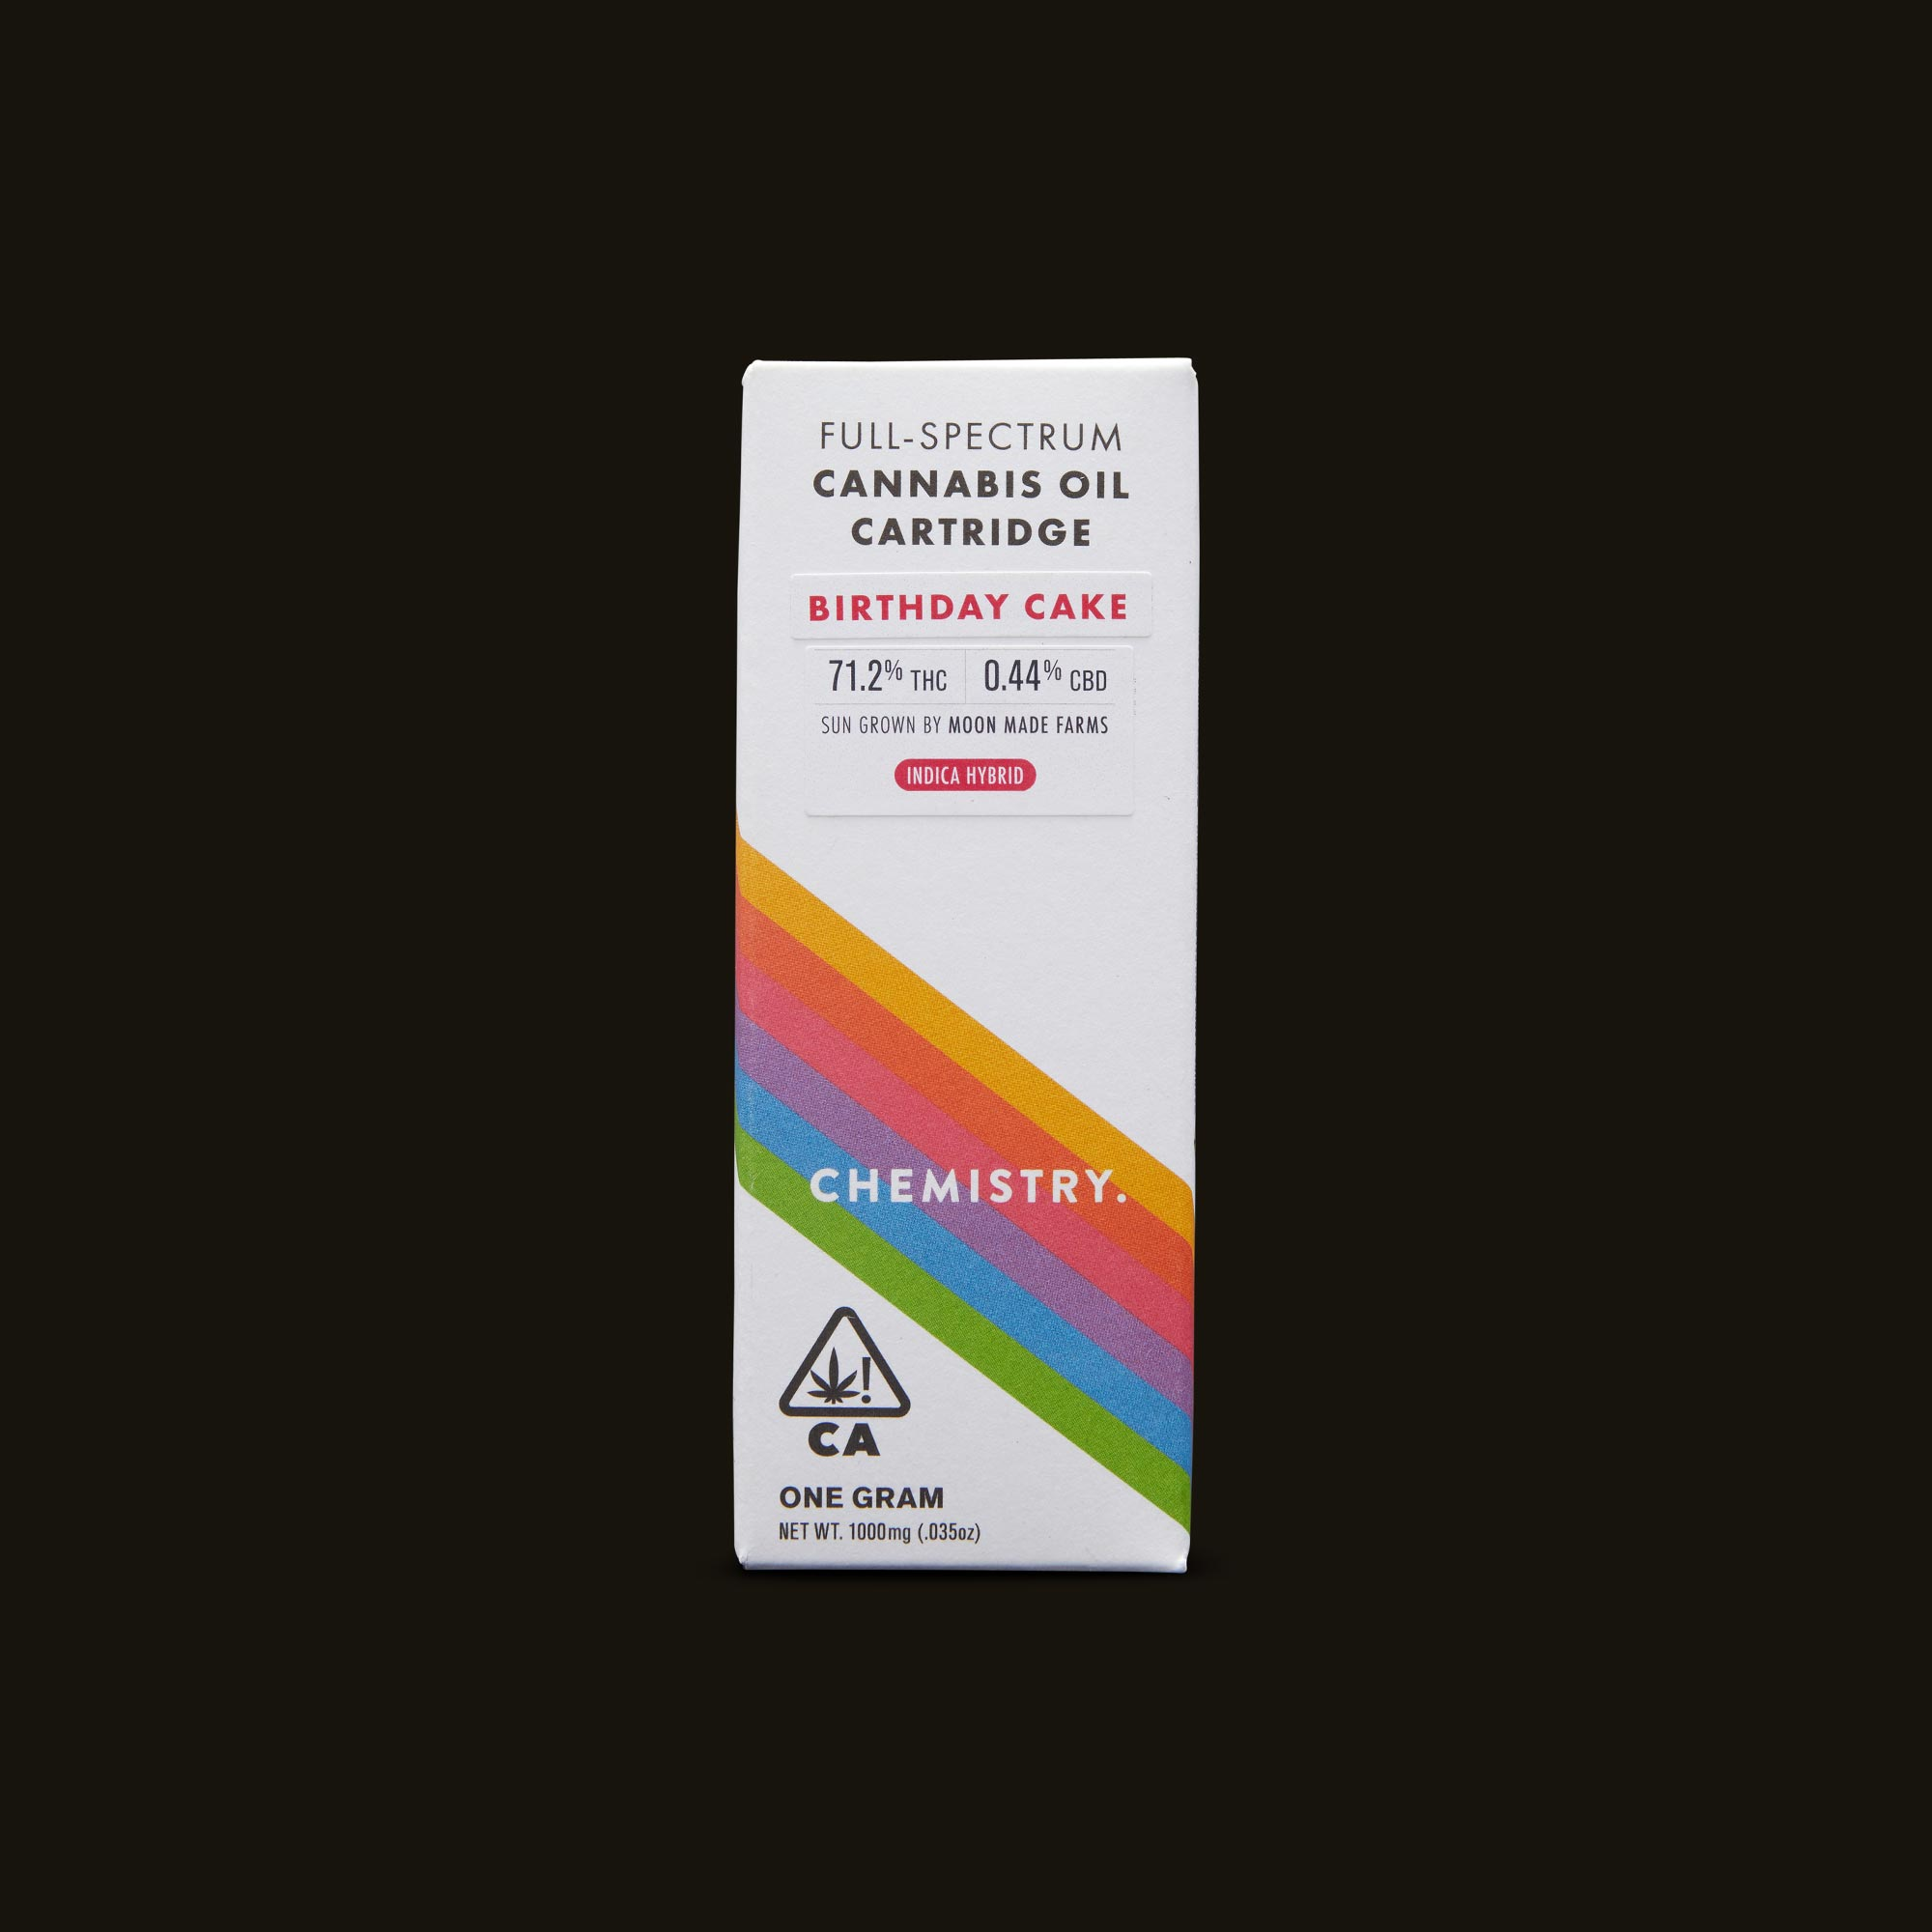 Chemistry Birthday Cake Cartridge Front Packaging